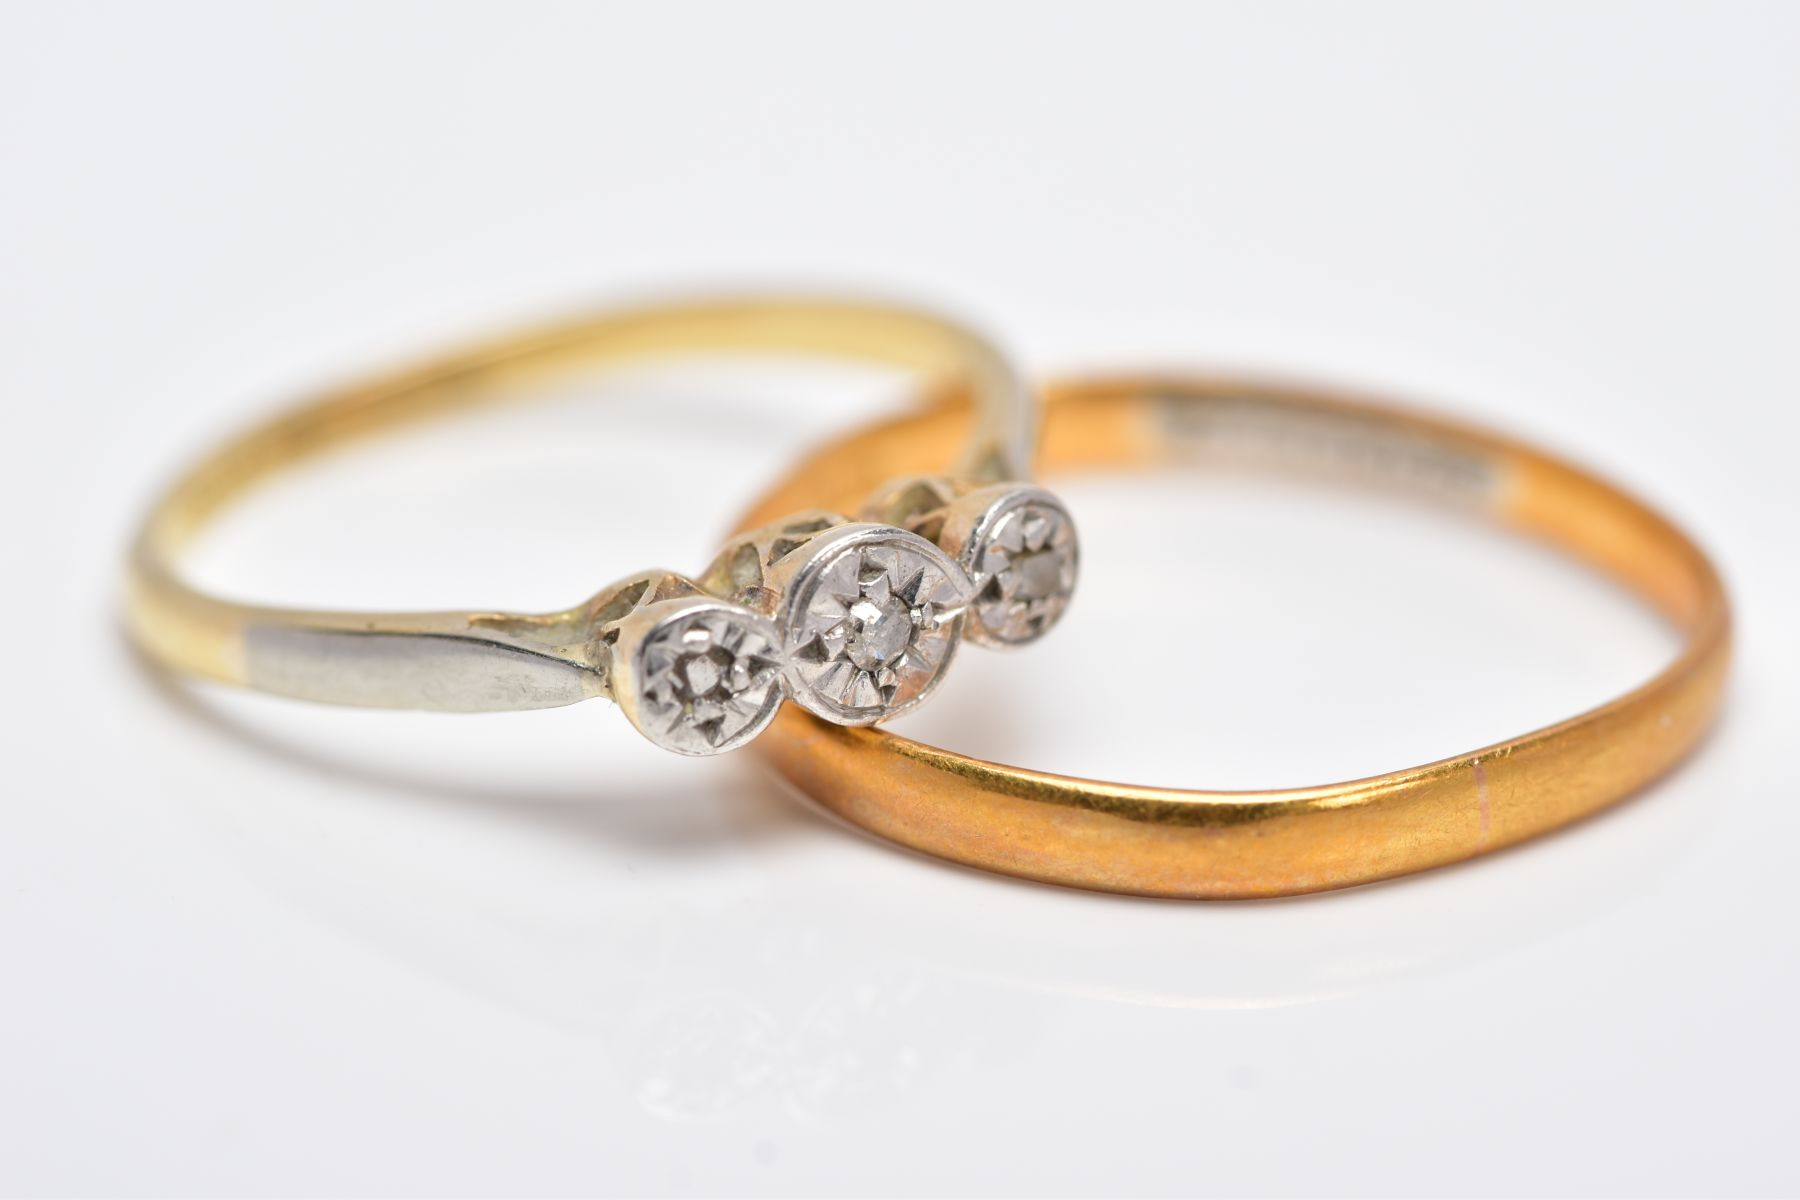 A YELLLOW METAL THREE STONE DIAMOND RING AND A 22CT GOLD BAND, the diamond ring centring on an - Image 2 of 3